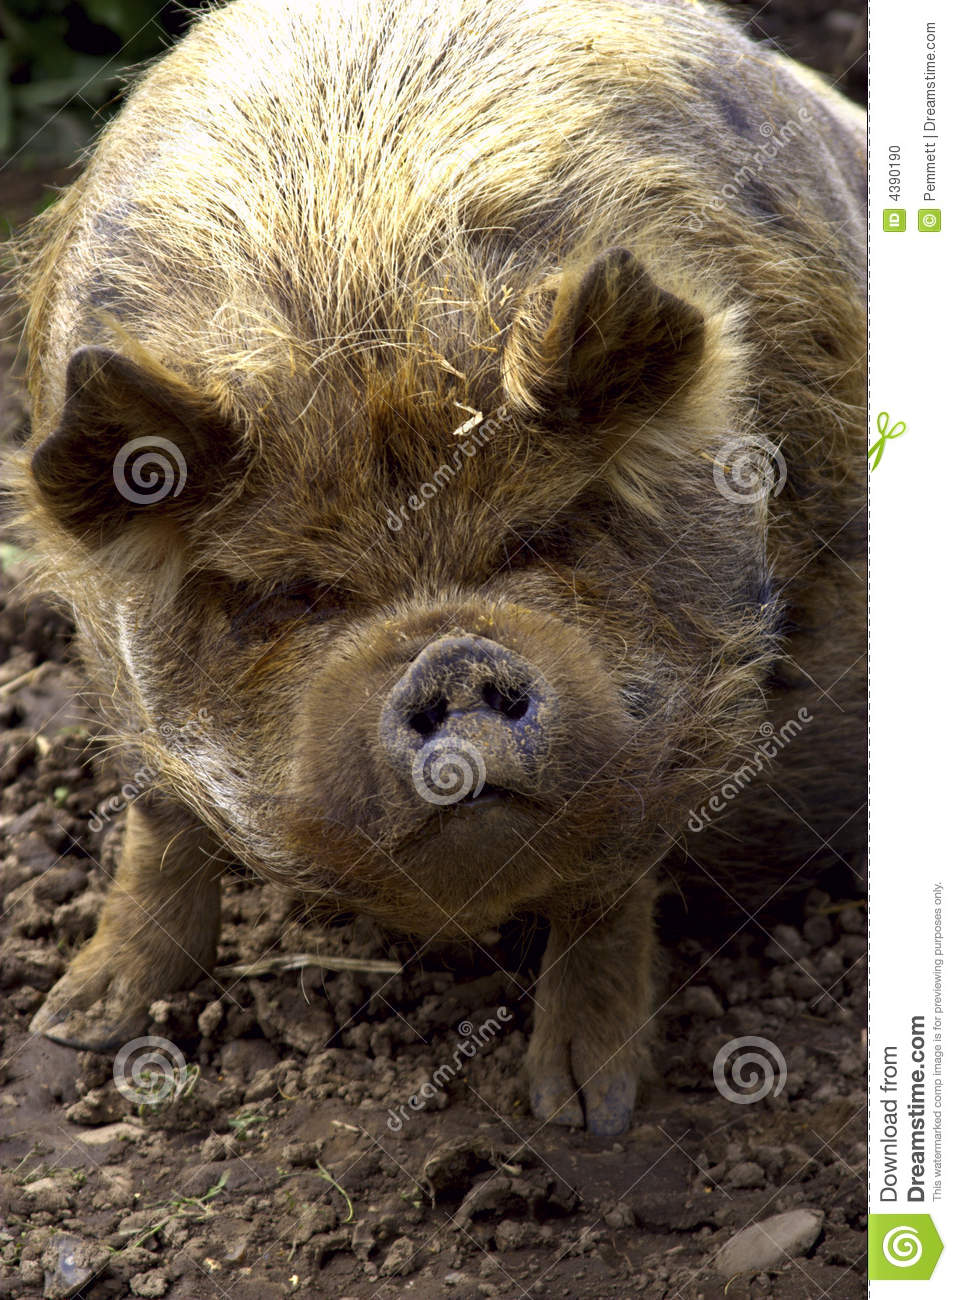 kuna kuna pig stock photo image 4390190 farm animals clipart black and white farm animals clip art for cnc